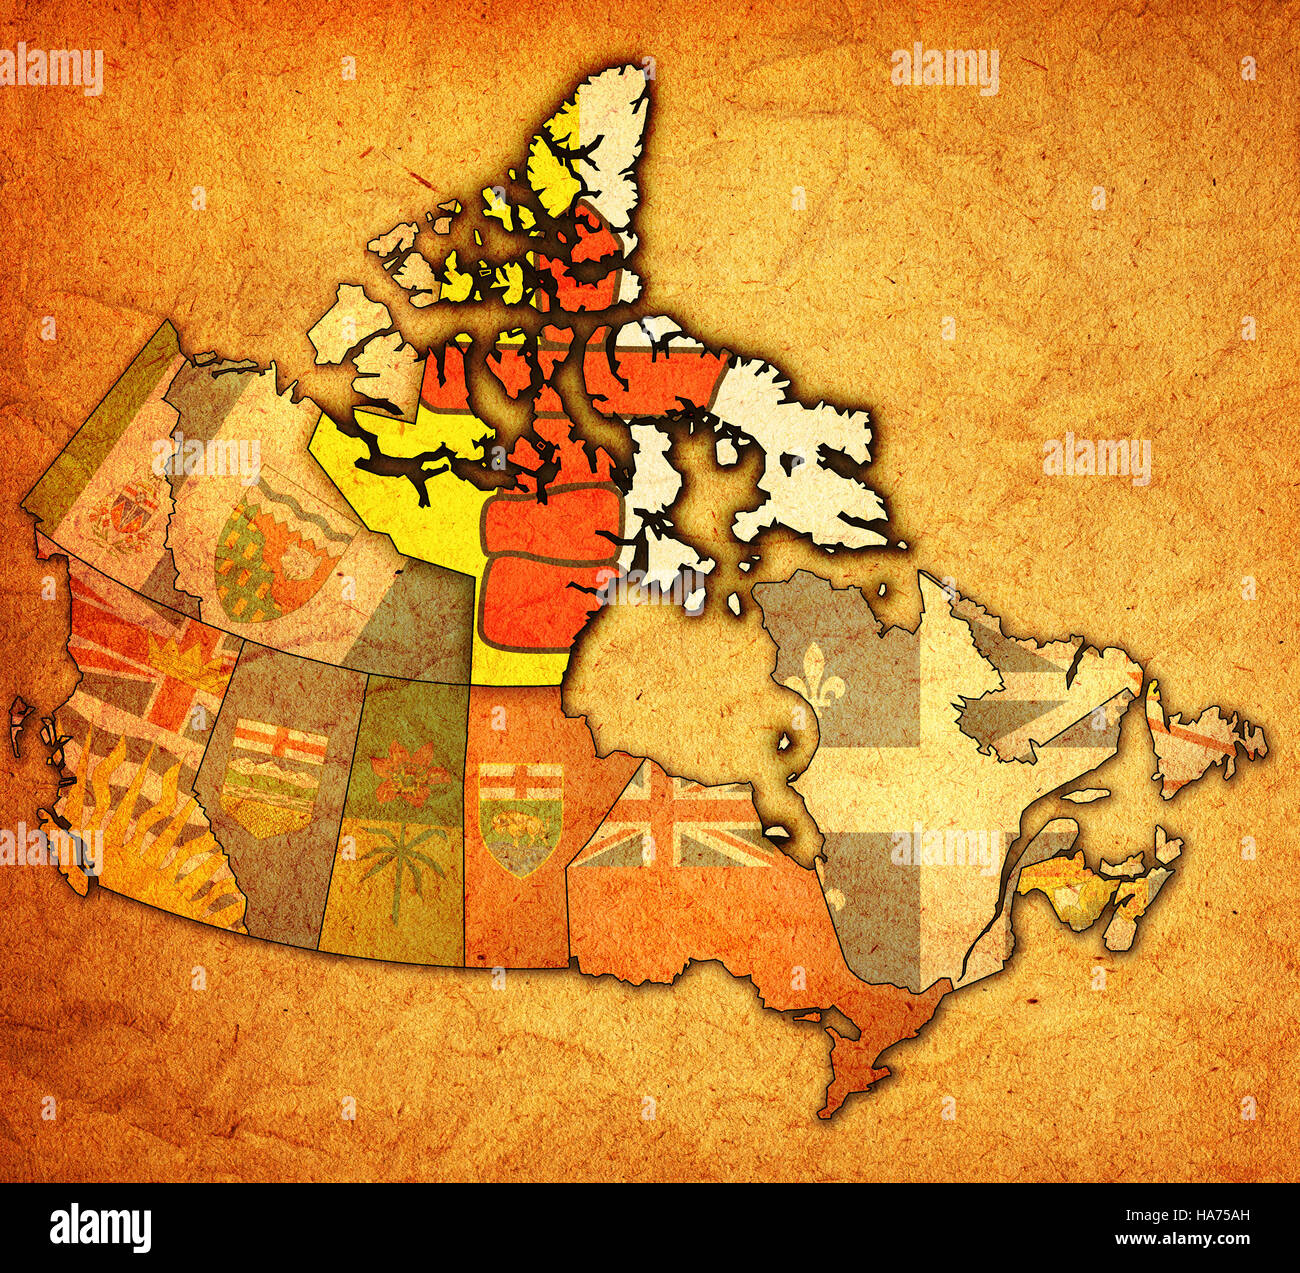 Map Of Canada Nunavut.Nunavut On Administration Map Of Canada With Flags Stock Photo